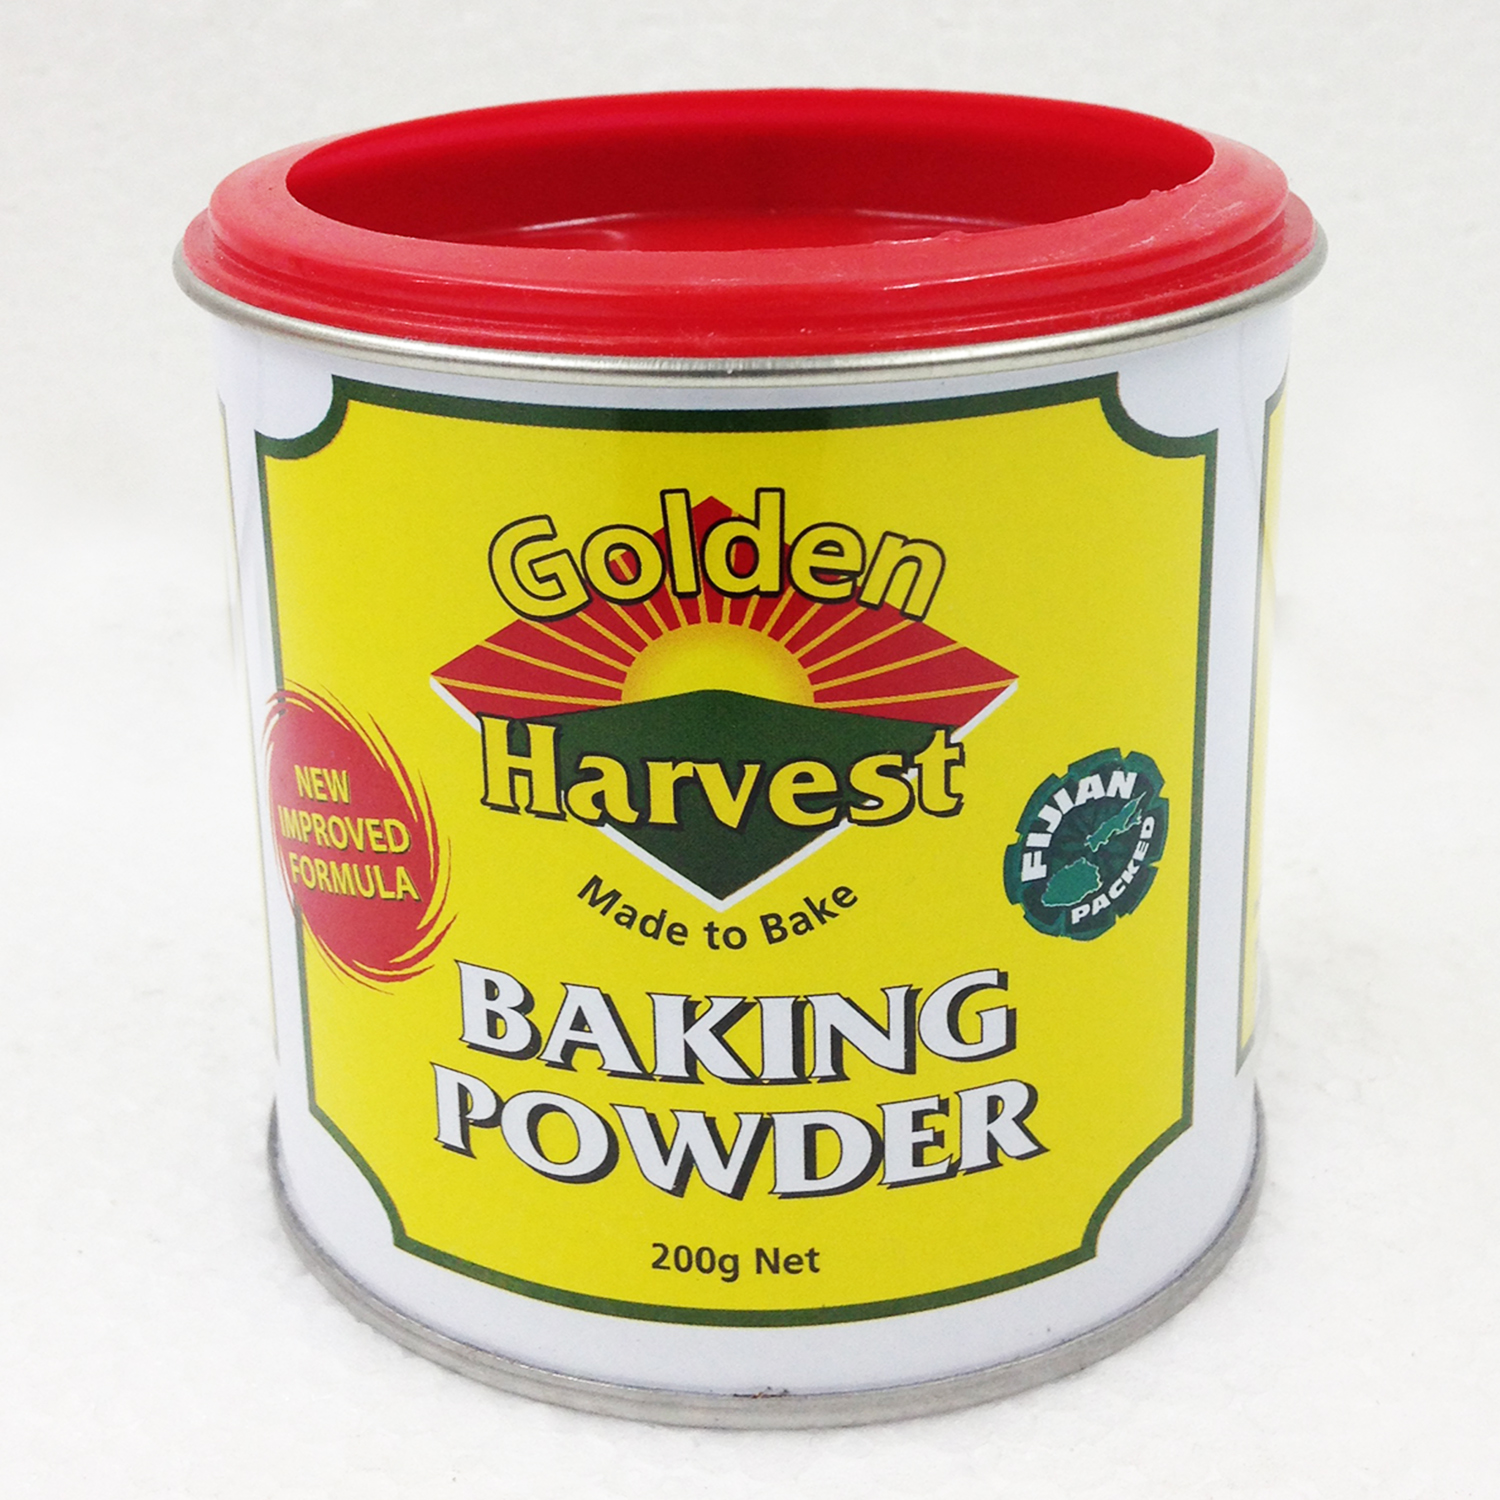 Golden Harvest Baking Powder